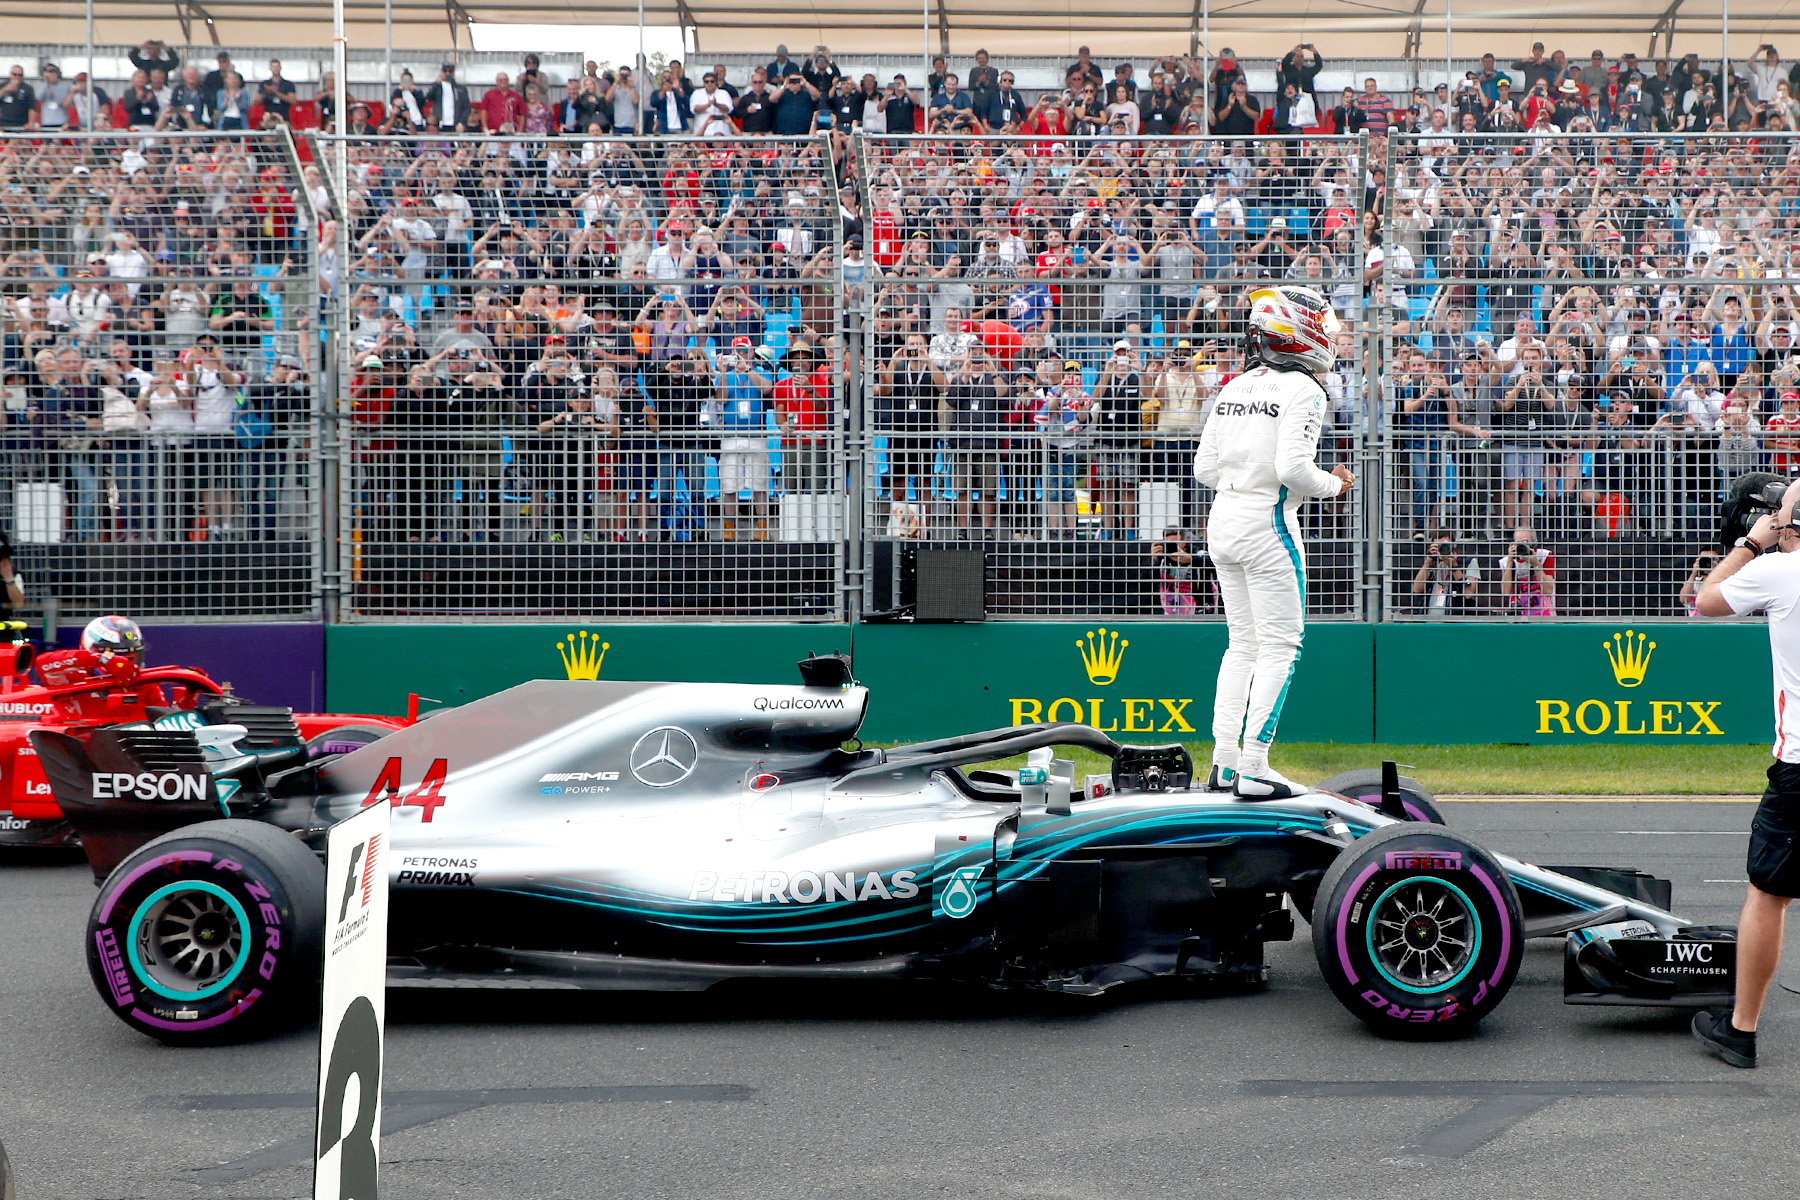 Lewis Hamilton celebrates pole at the 2018 Australian Grand Prix.